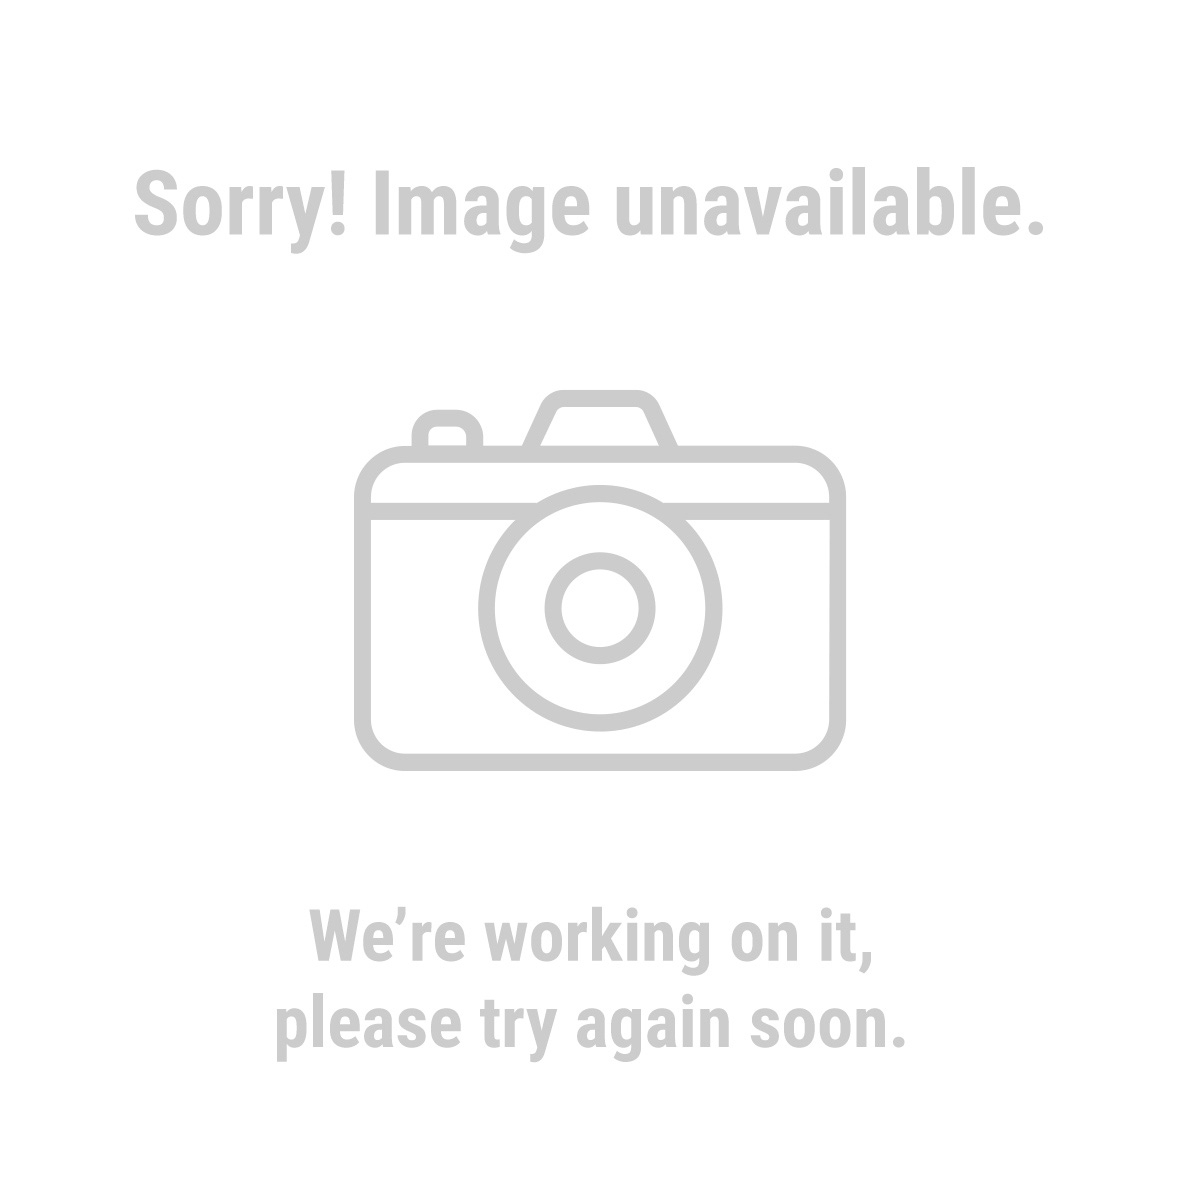 Detailer's Choice 68450 Bone Sponge